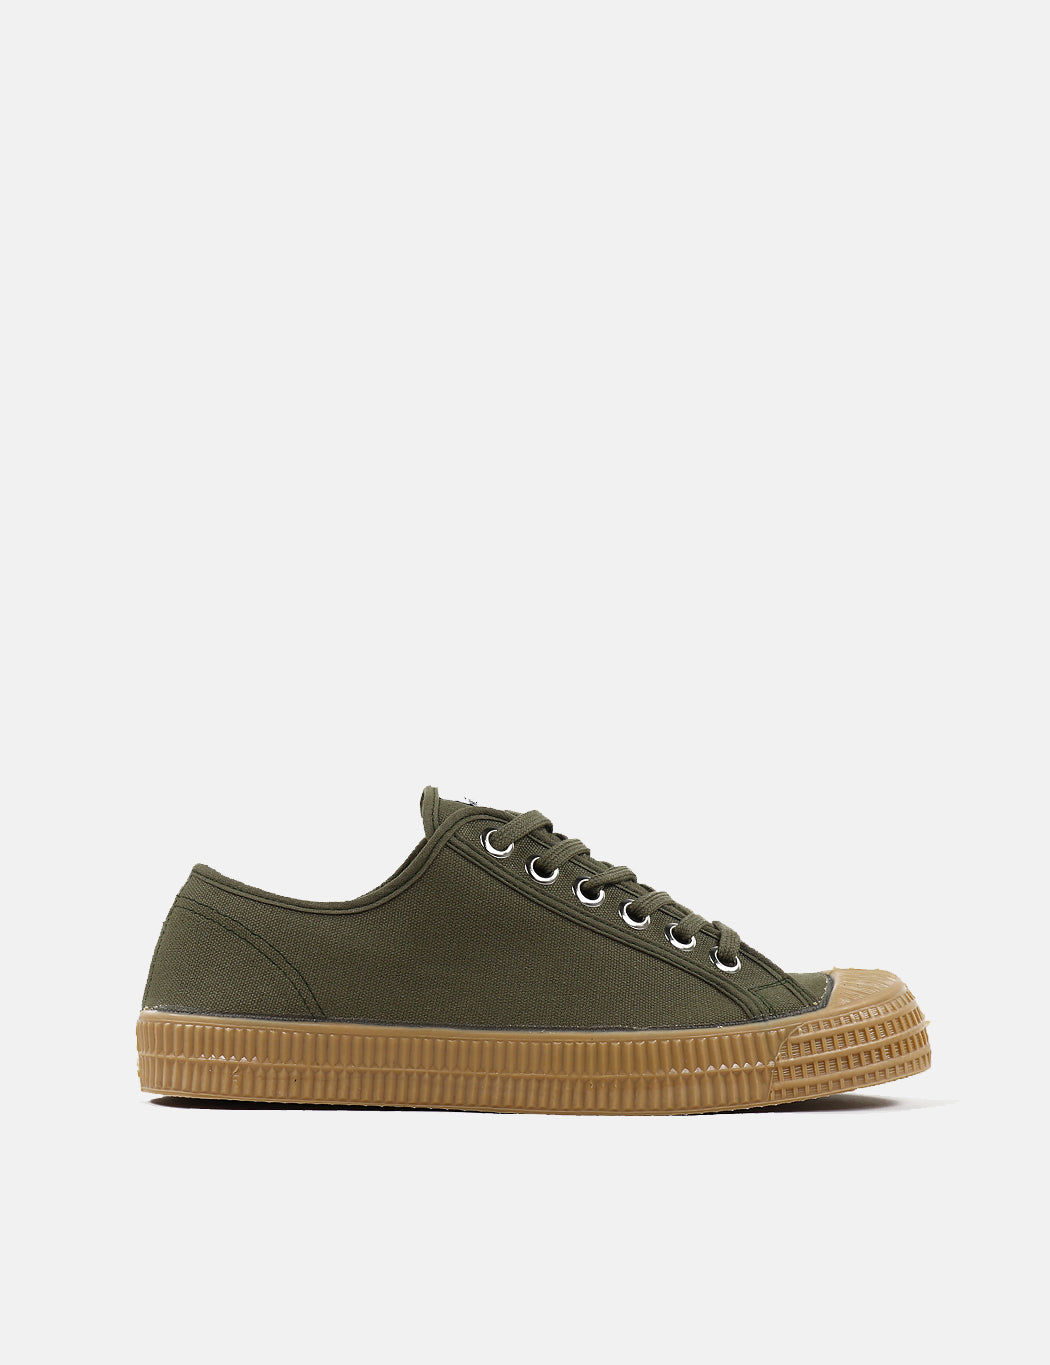 Novesta Star Master Trainers (Canvas) - Military Green/Gum